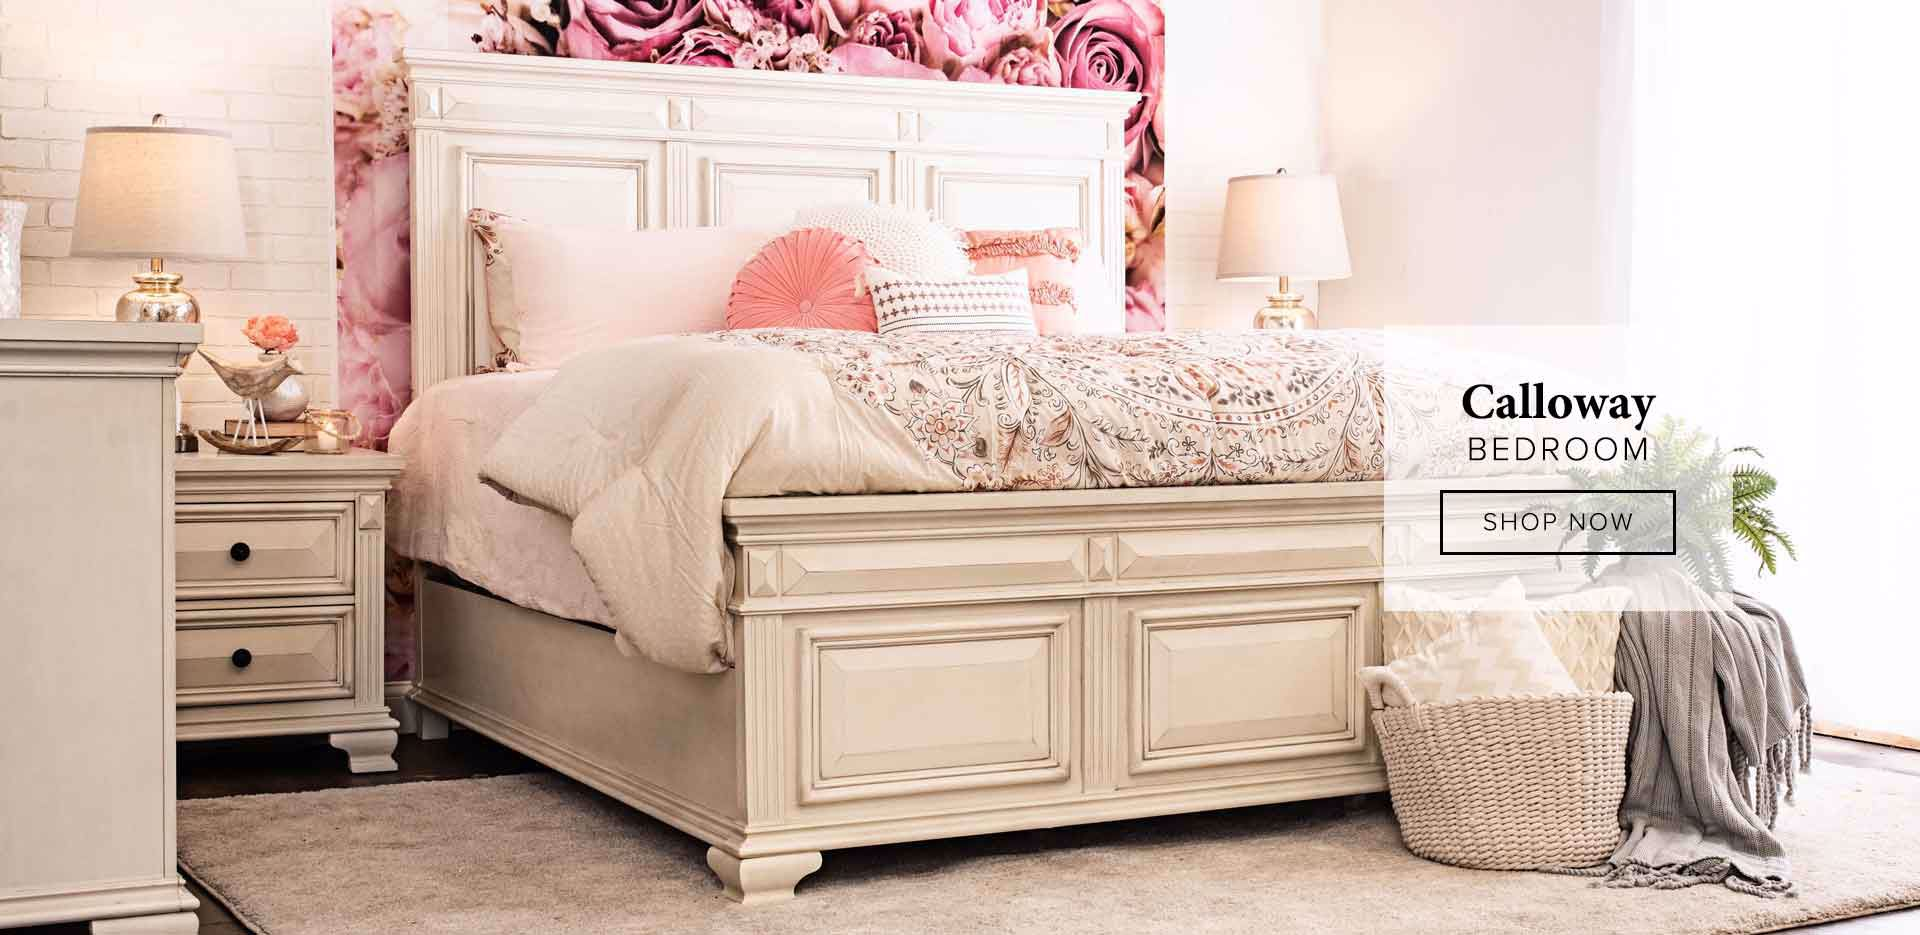 Home Zone Furniture - Furniture Stores serving Dallas, Fort Worth ...